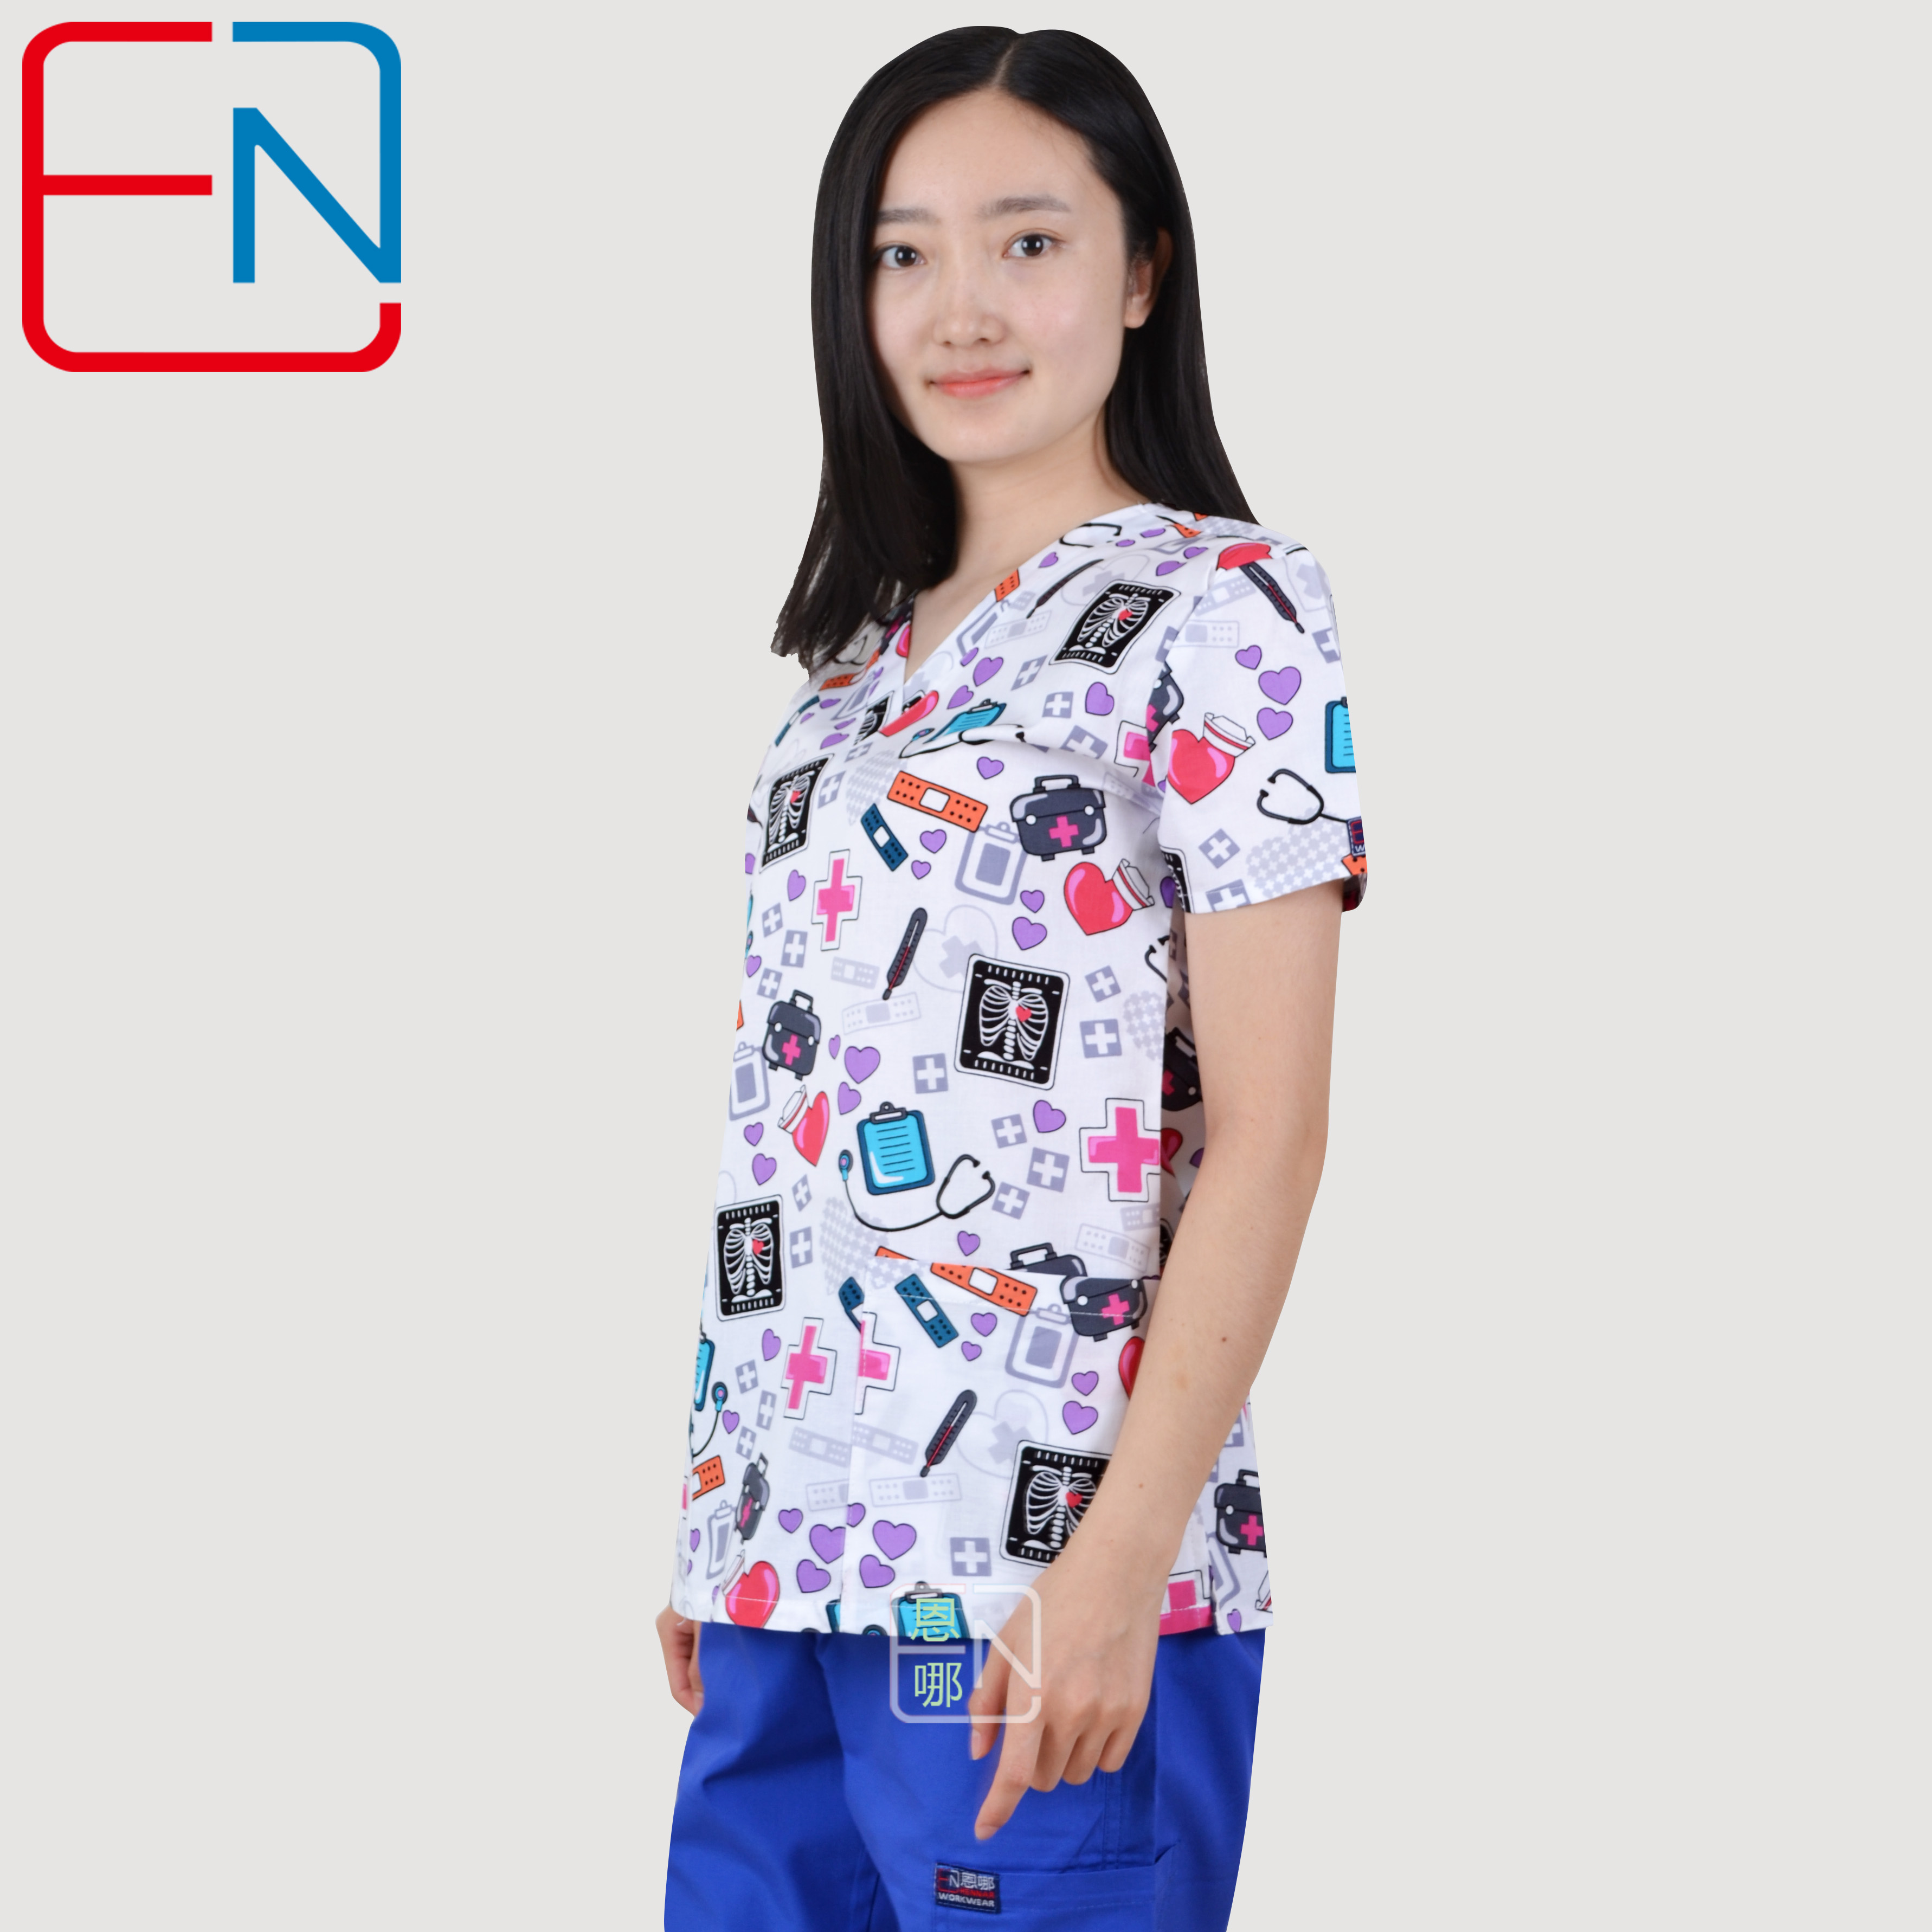 Hennar  Medical Scrubs  Nursing Scrubs  Women Scrubs  Nurse Medical  Uniformes Medicos Para Mujer  Scrub Tops